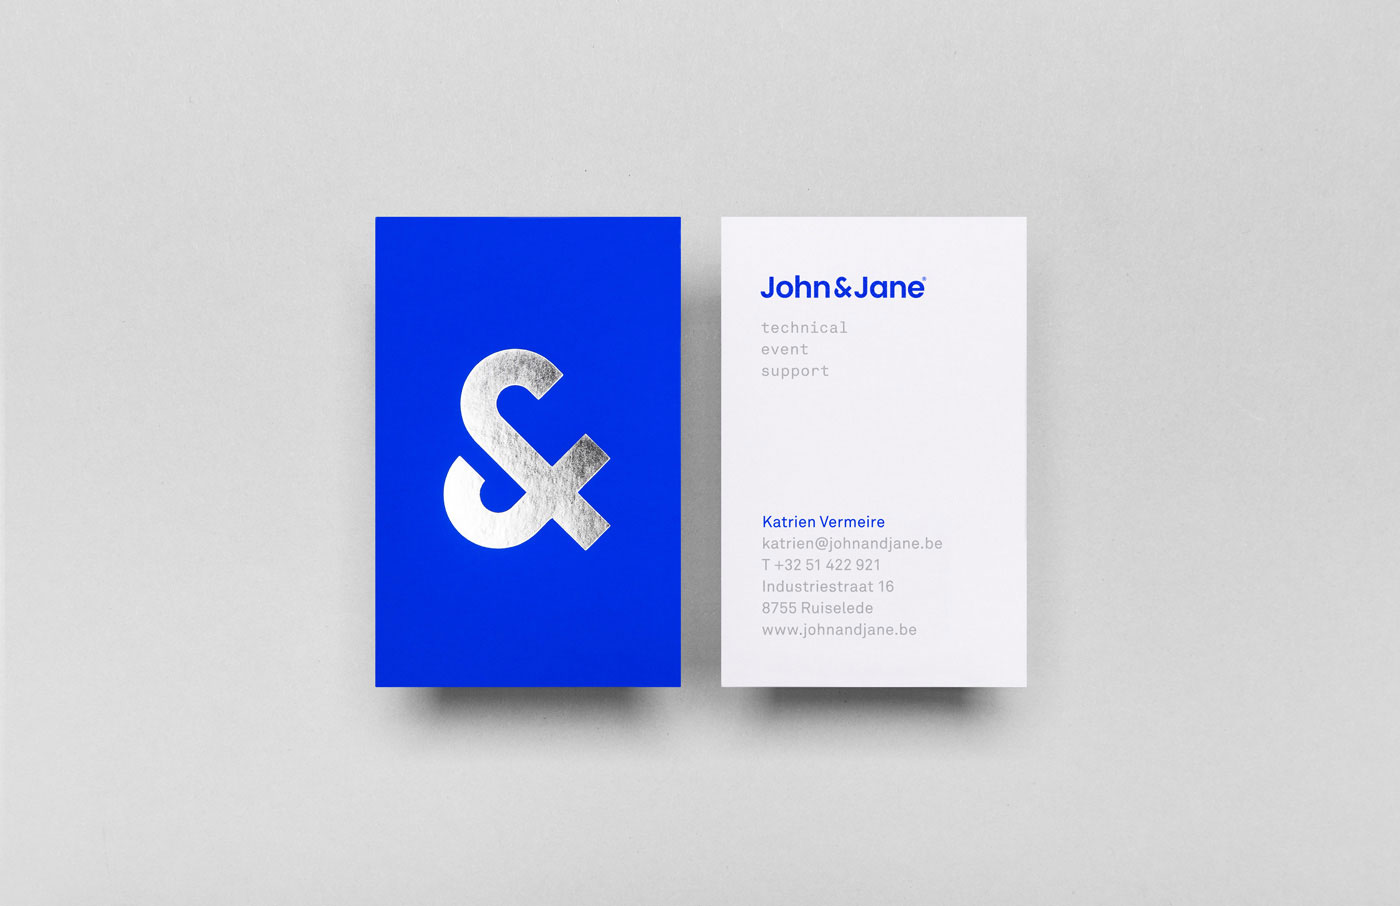 john-and-jane-logo-03-1